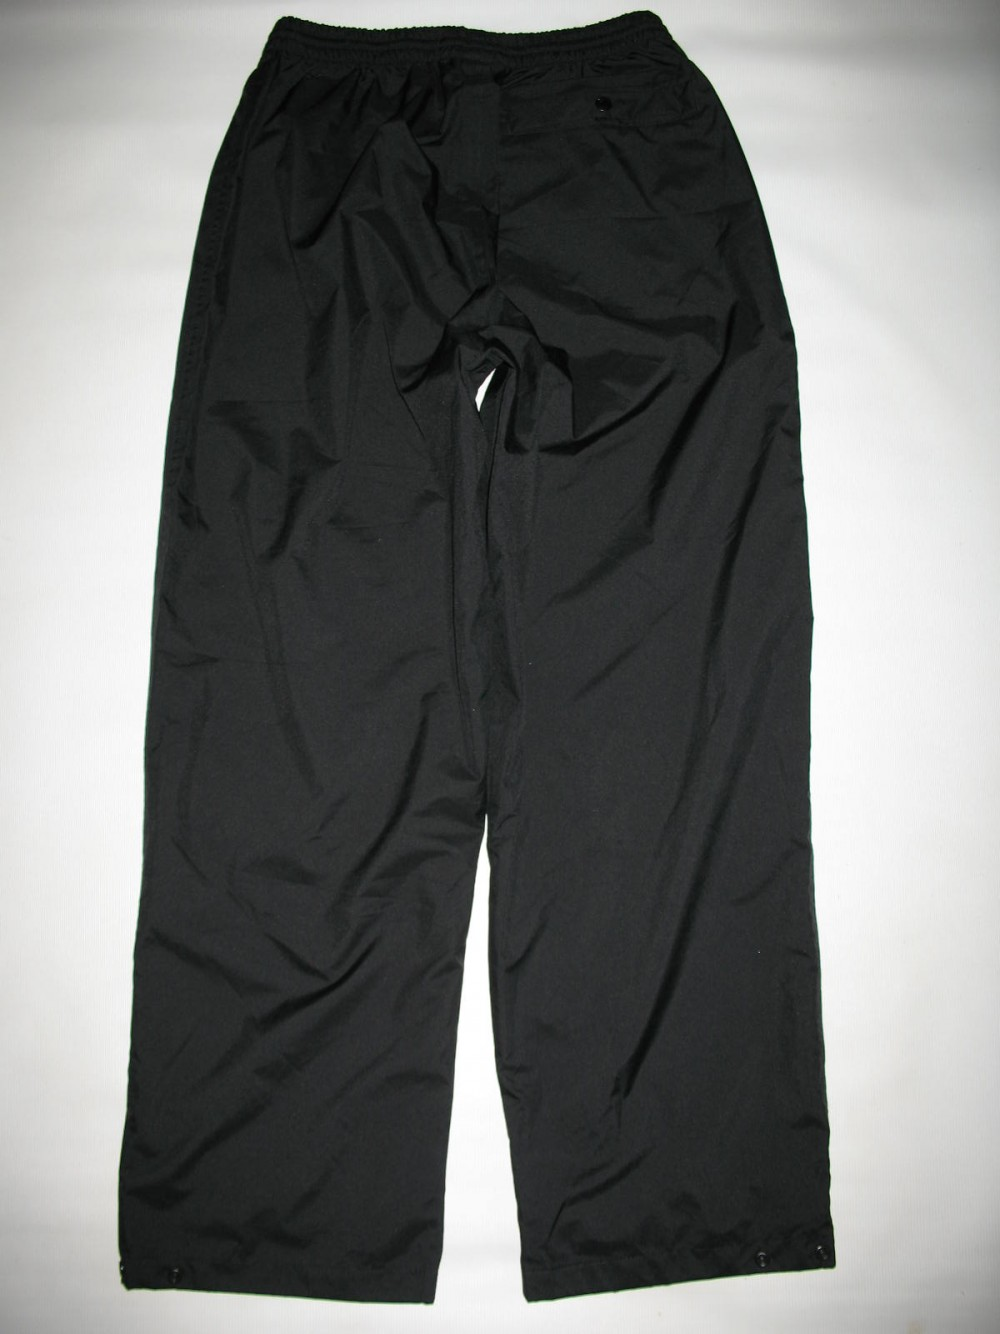 Штаны HELLY HANSEN hellytech pants (размер М) - 2